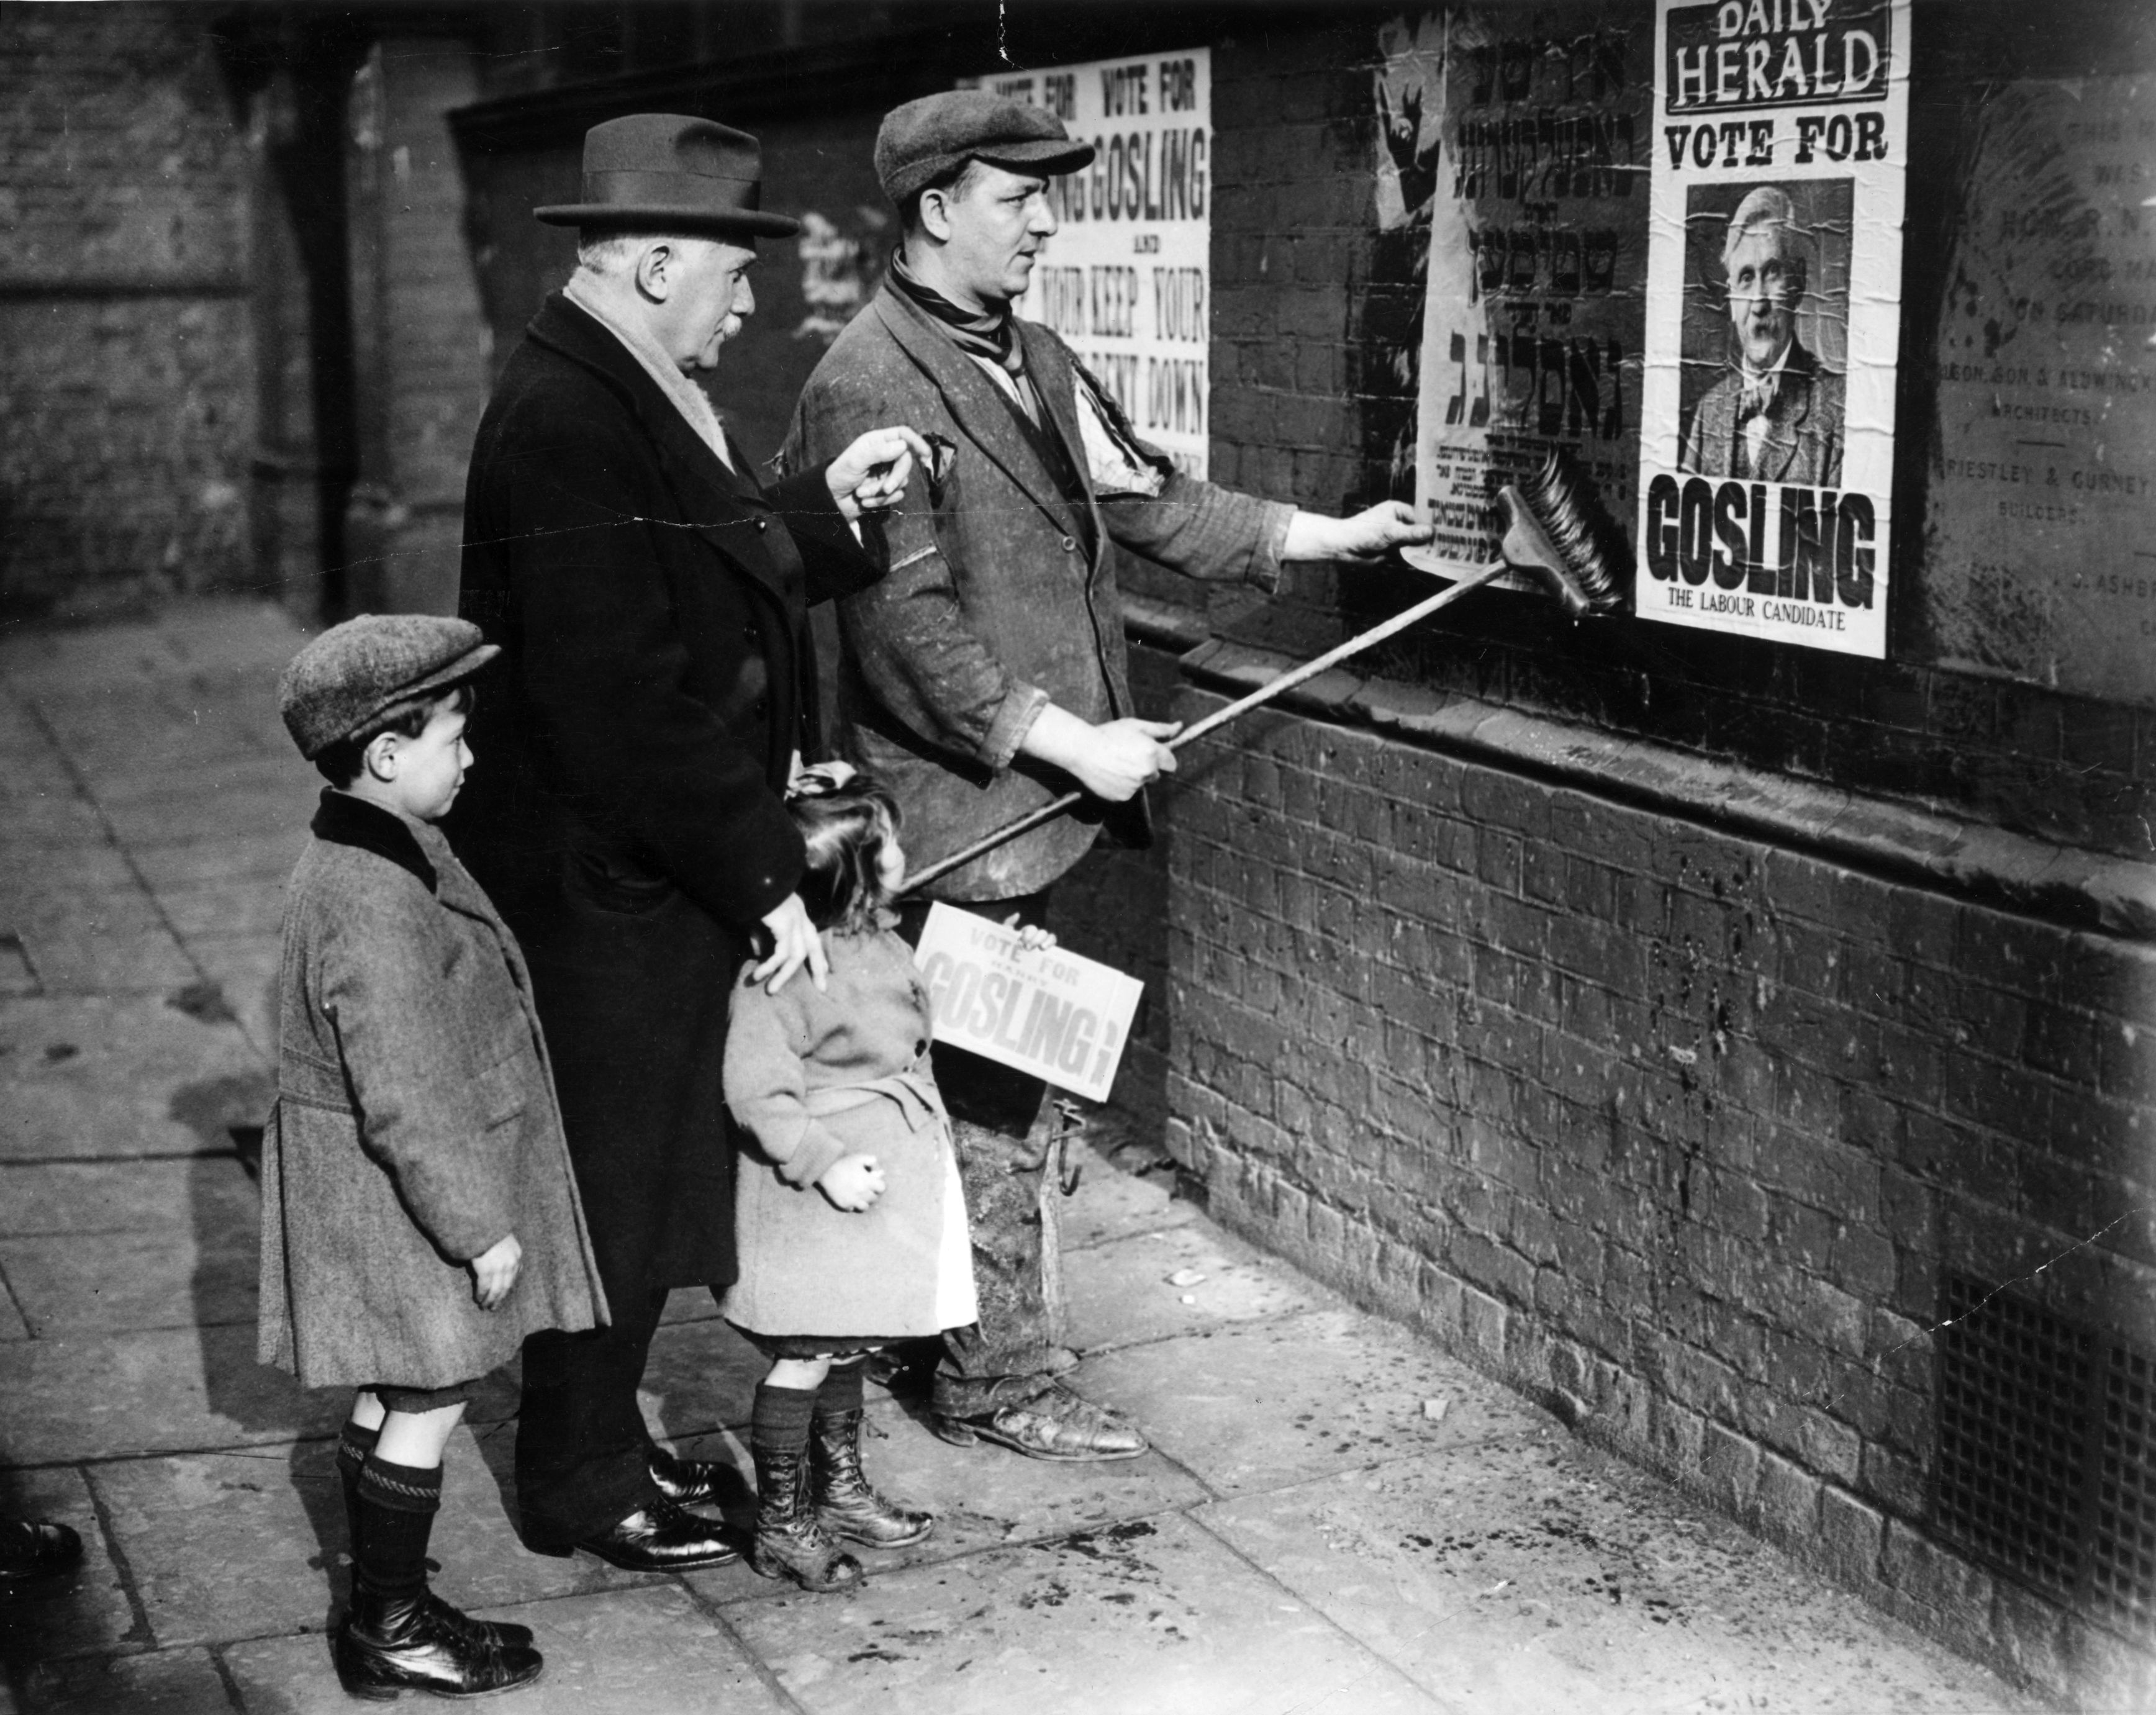 Labour Party candidate Henry Gosling supervises a poster campaign during the election.